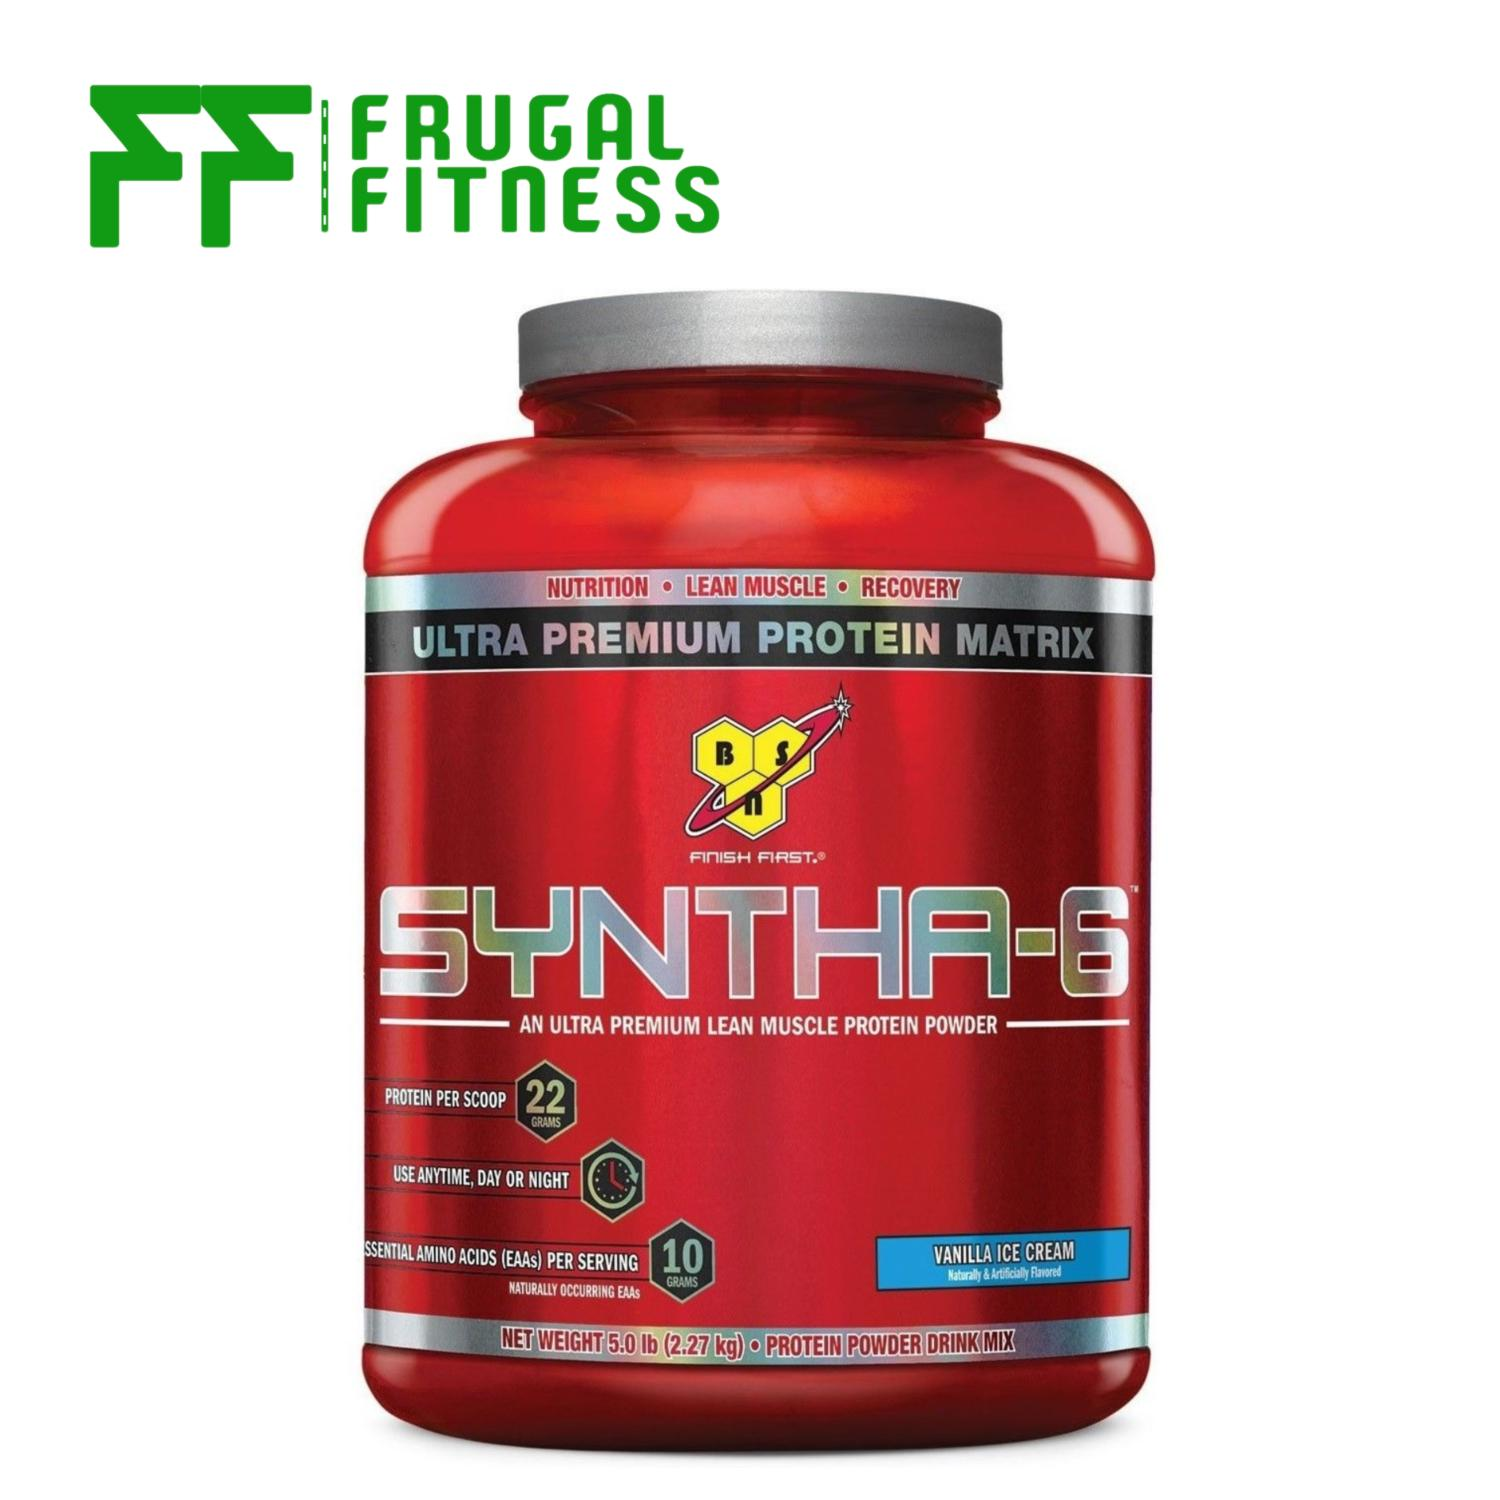 Bsn Syntha 6 Protein Powder 5lbs [various Flavors] By Frugal Fitness.